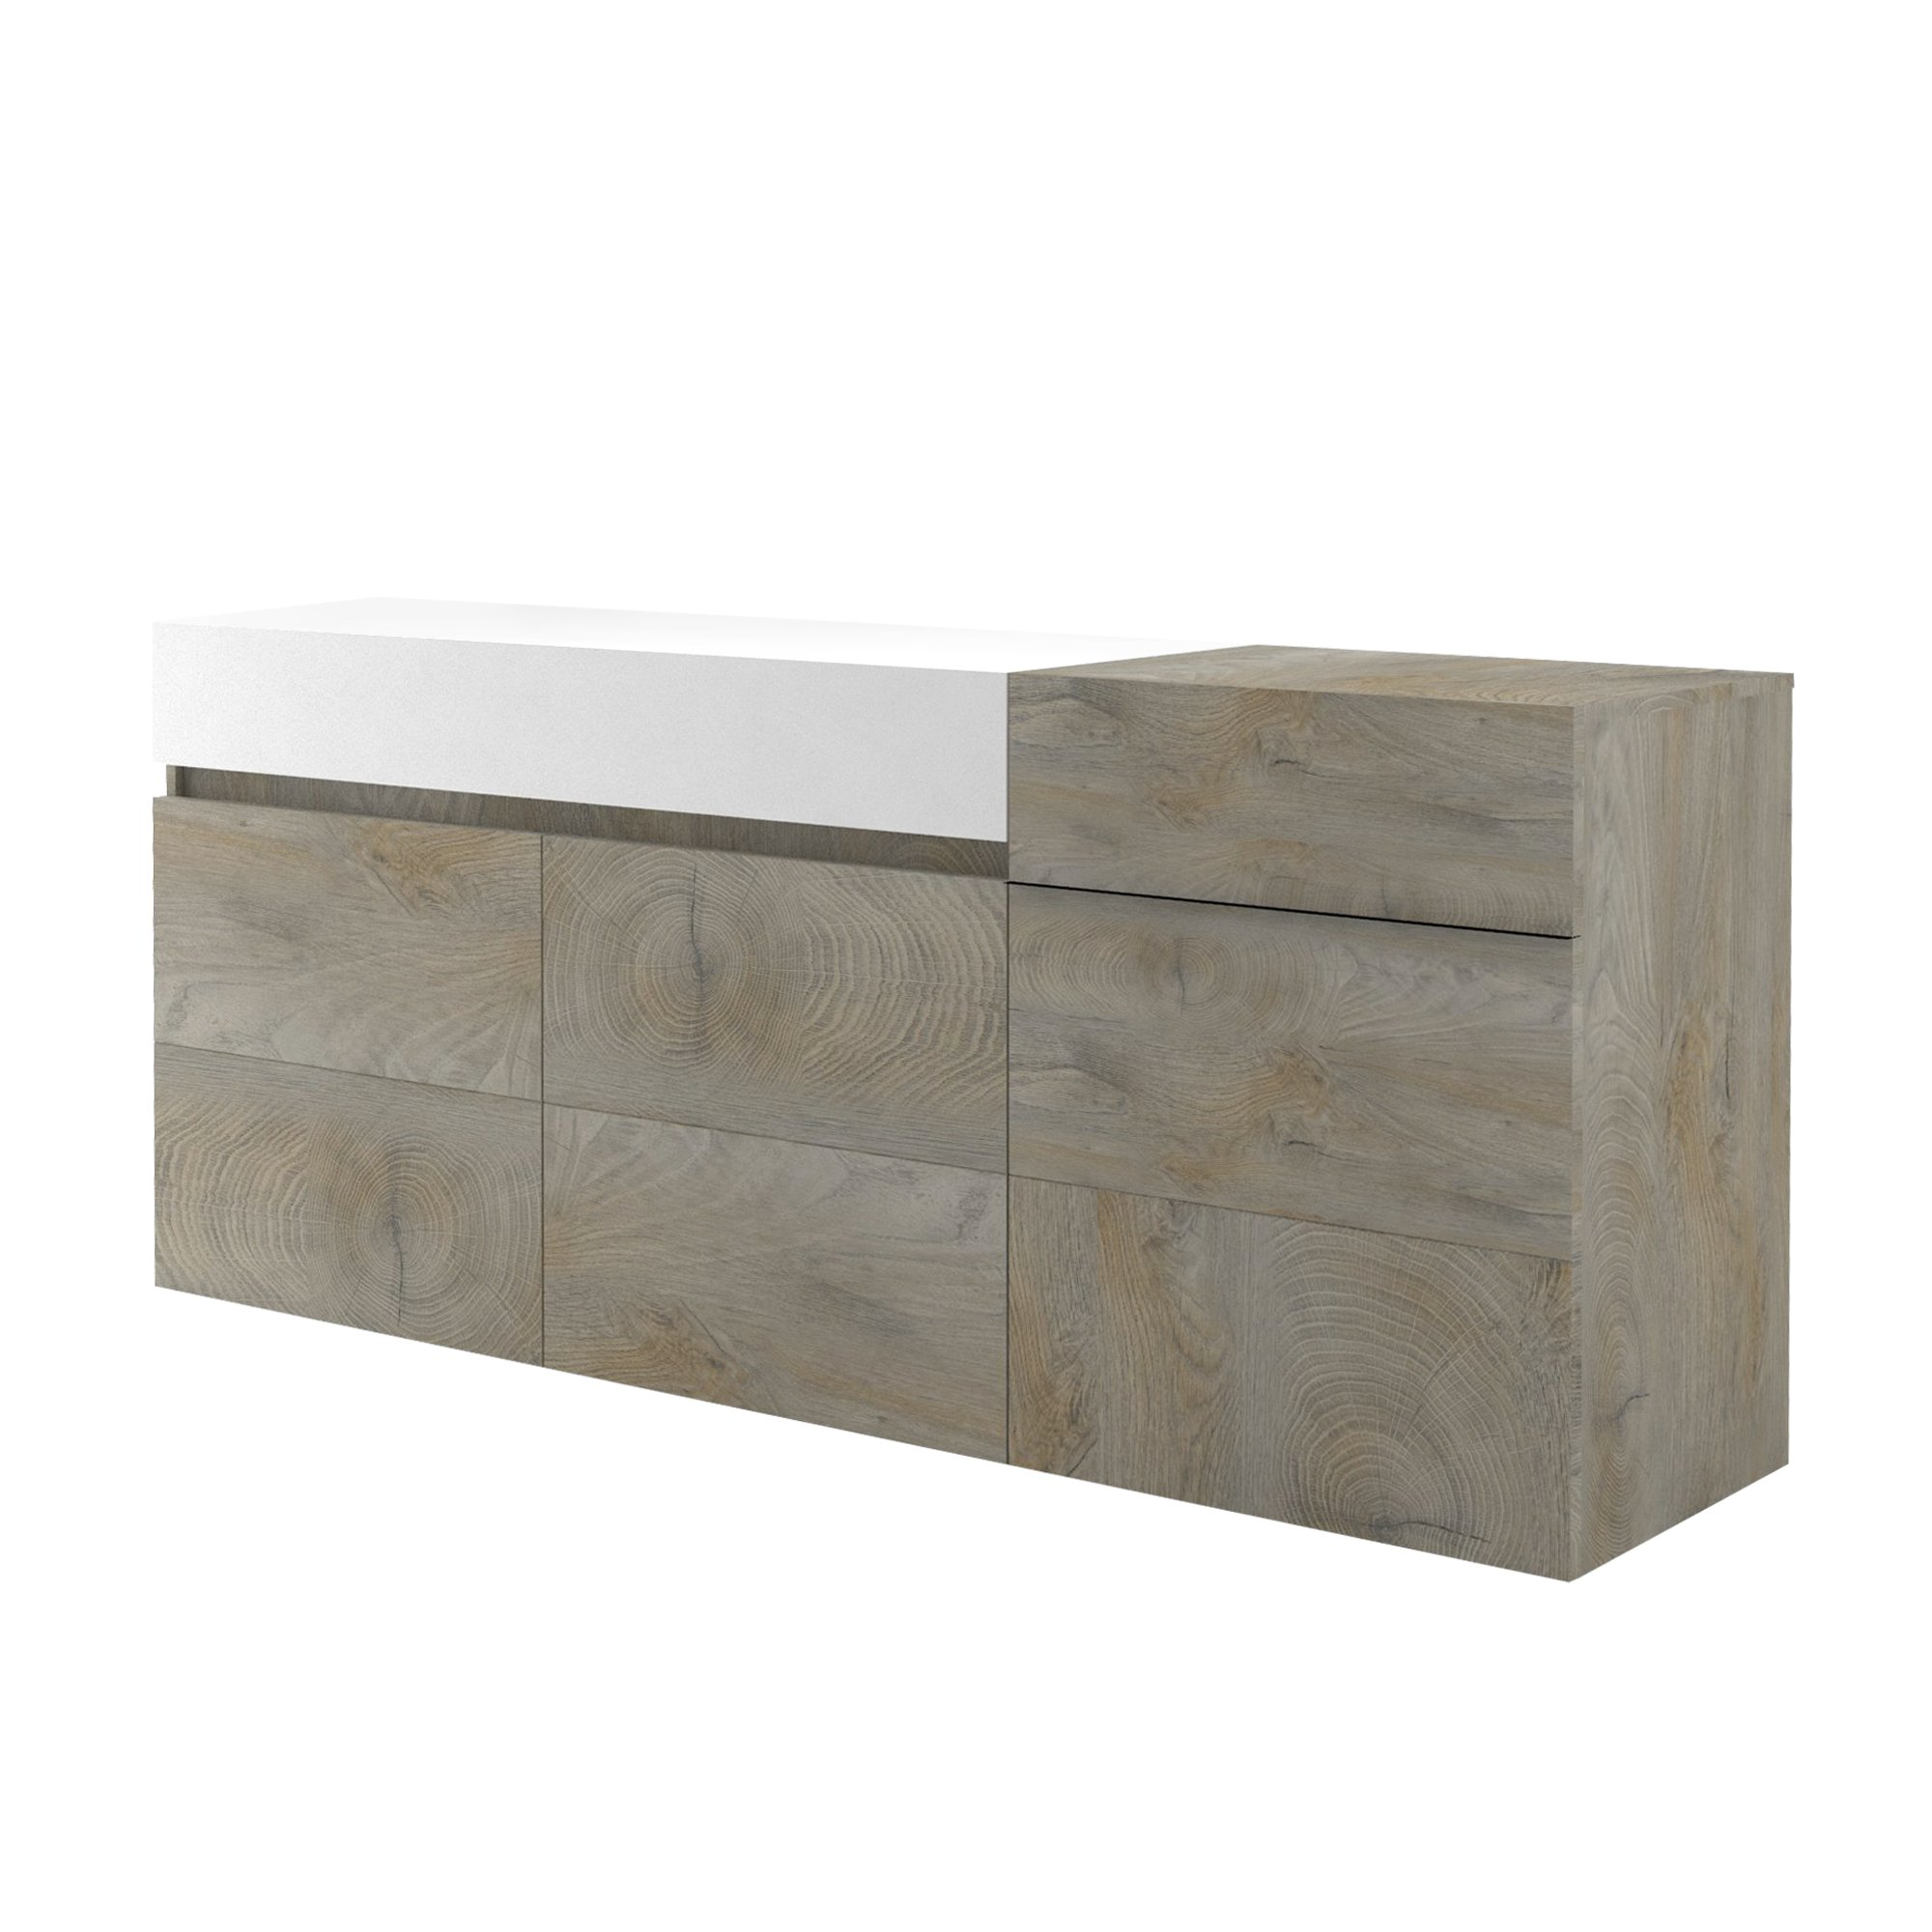 Muller Small Sideboard In Distressed Effect And White With LED_4